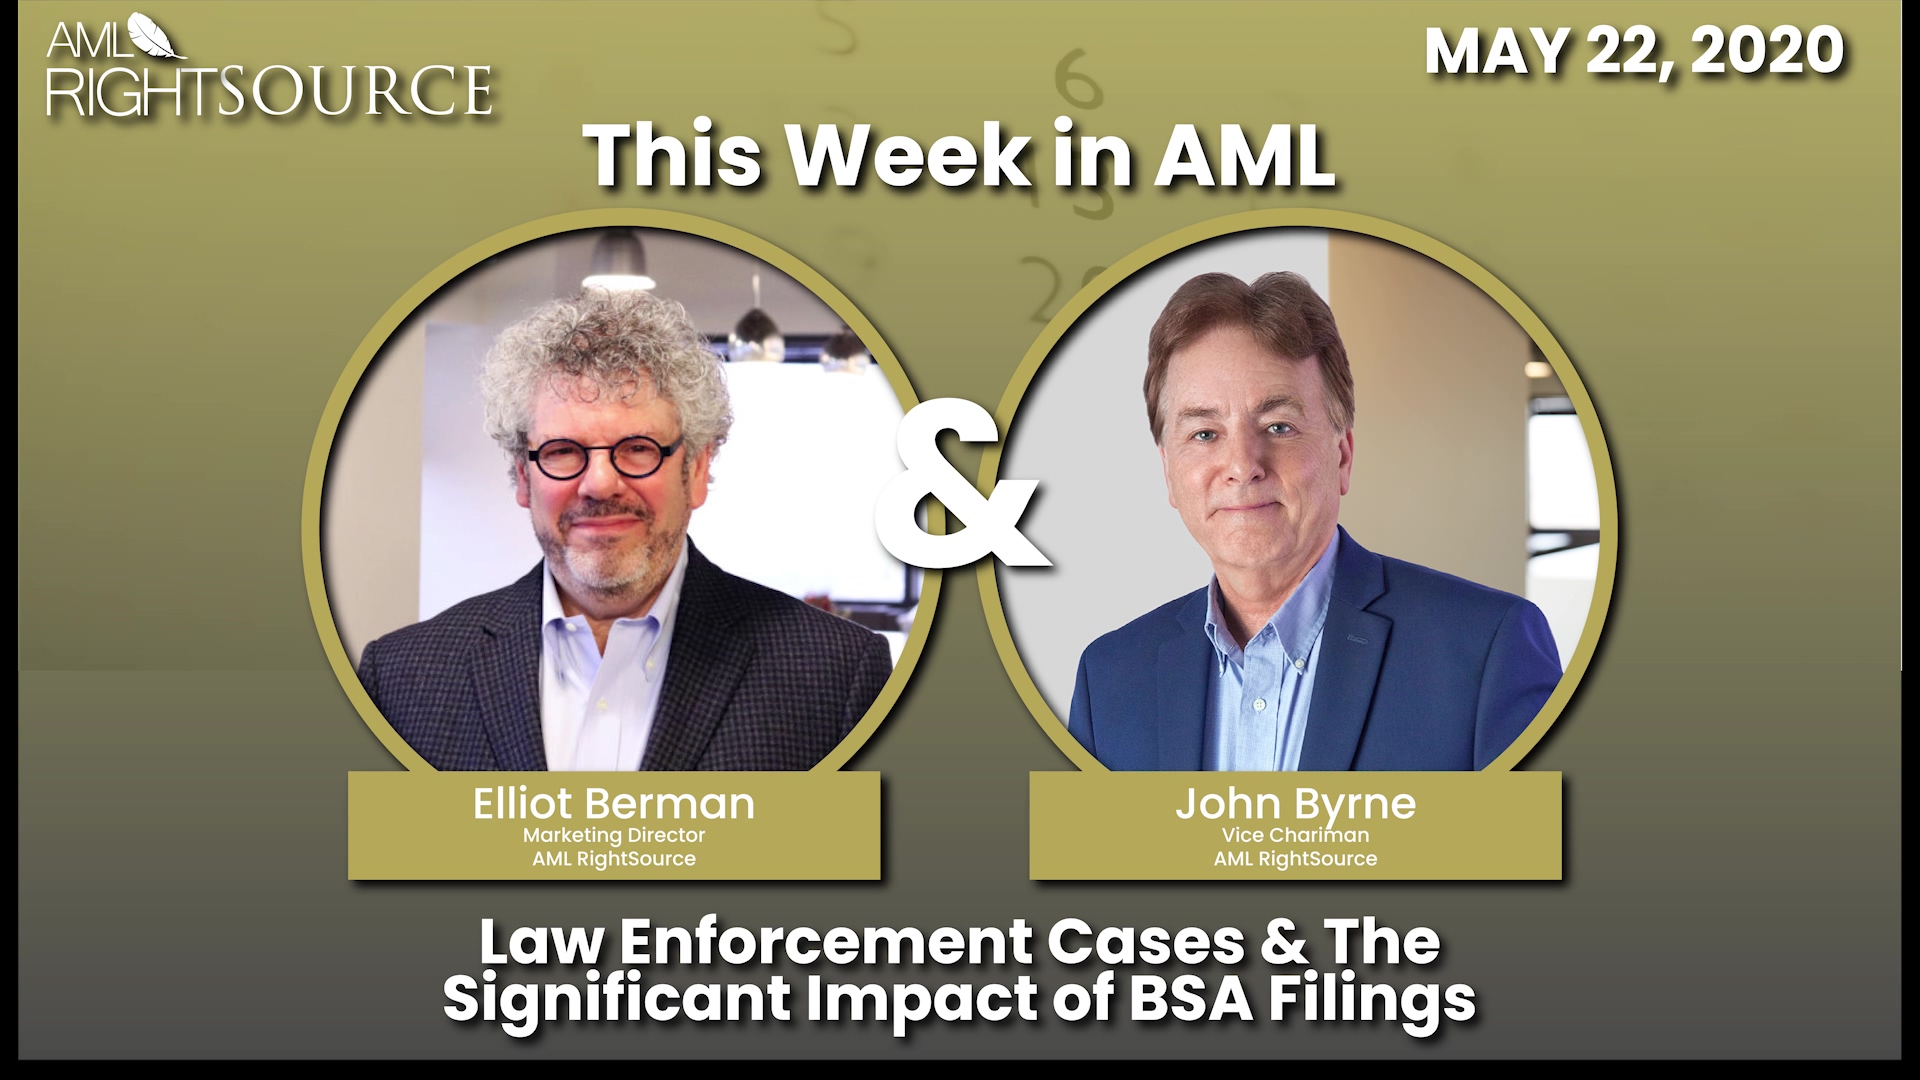 This_Week_In_AML_Law_Enforcement_Cases_&_The_Significant_Impact_Of_BSA_Filings